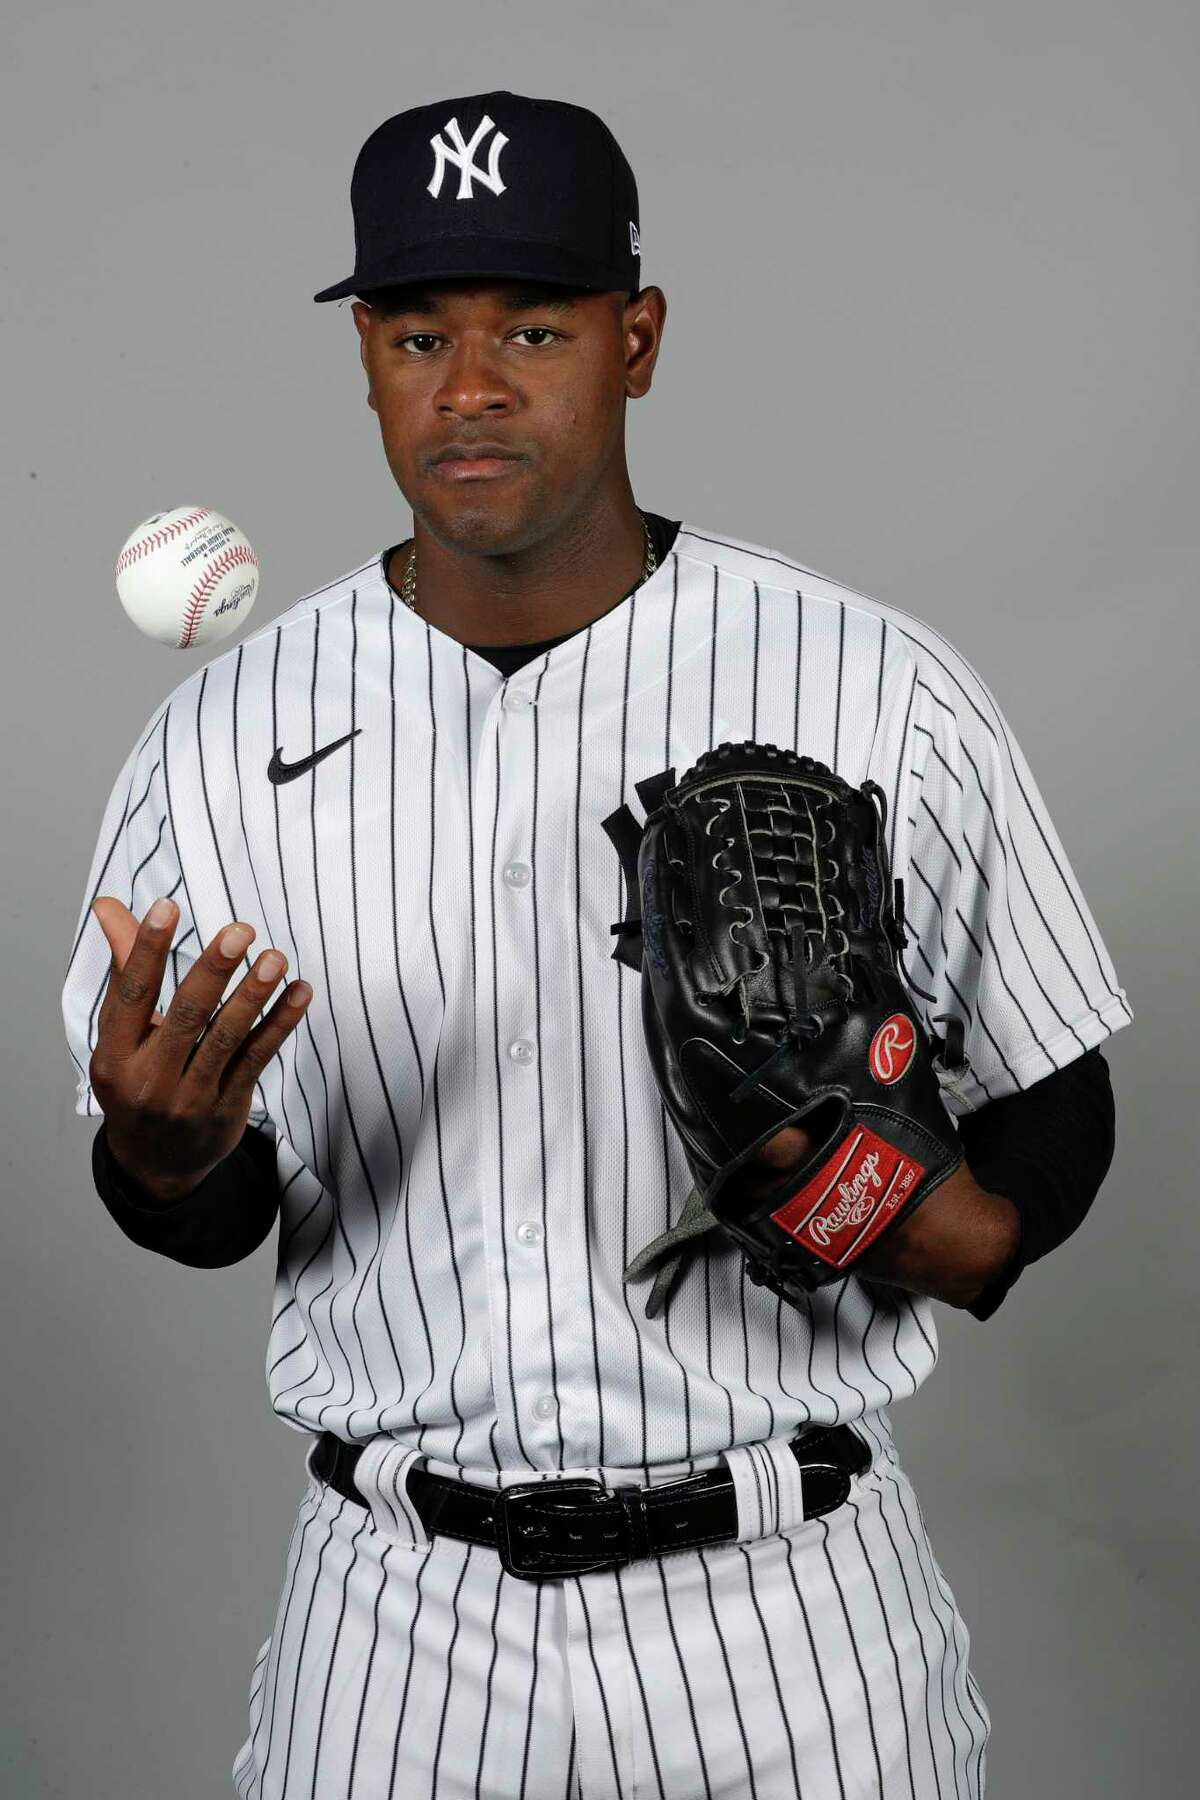 FILE - This is a Feb. 20, 2020, file photo showing New York Yankees' Luis Severino. Severino needs Tommy John surgery and will miss the 2020 season, another setback for the two-time All-Star and the rotation of the AL East favorites. a€œHis plan is to have it done as soon as possible,a€ Yankees general manager Brian Cashman said Tuesday, Feb. 25, 2020. (AP Photo/Frank Franklin II, File)